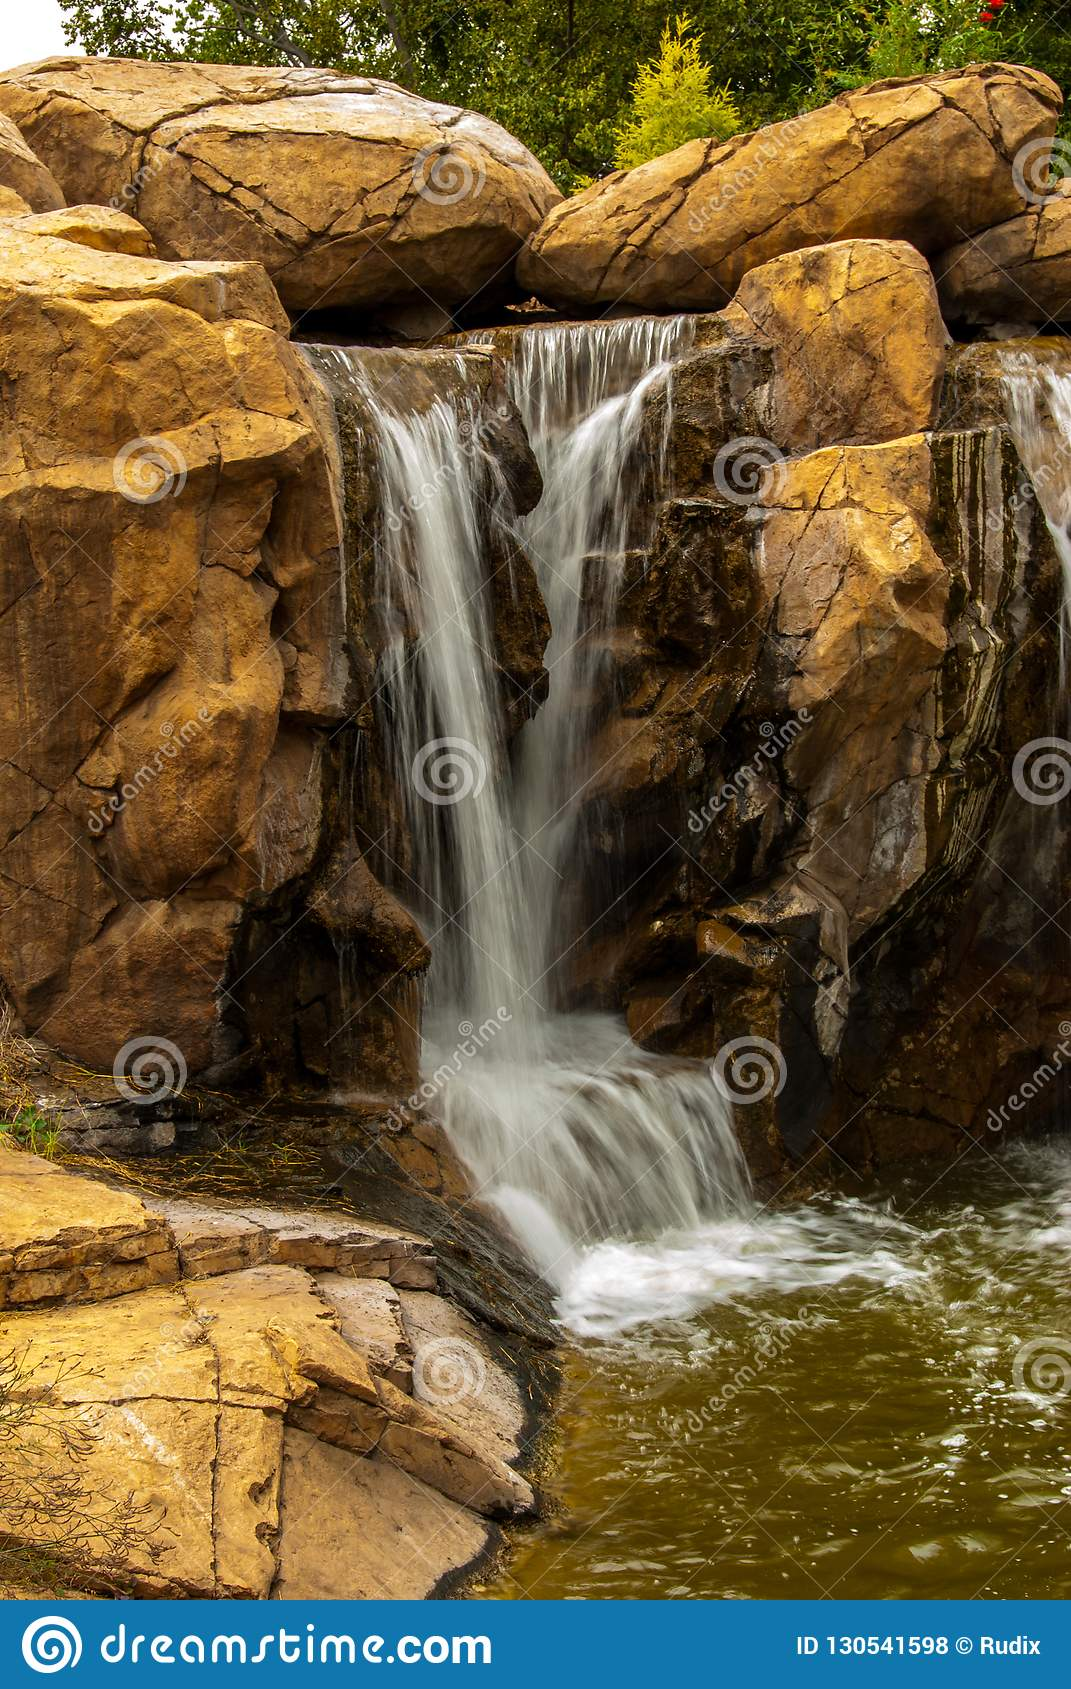 Small Waterfall In Botanical Garden In South Africa Stock Photo